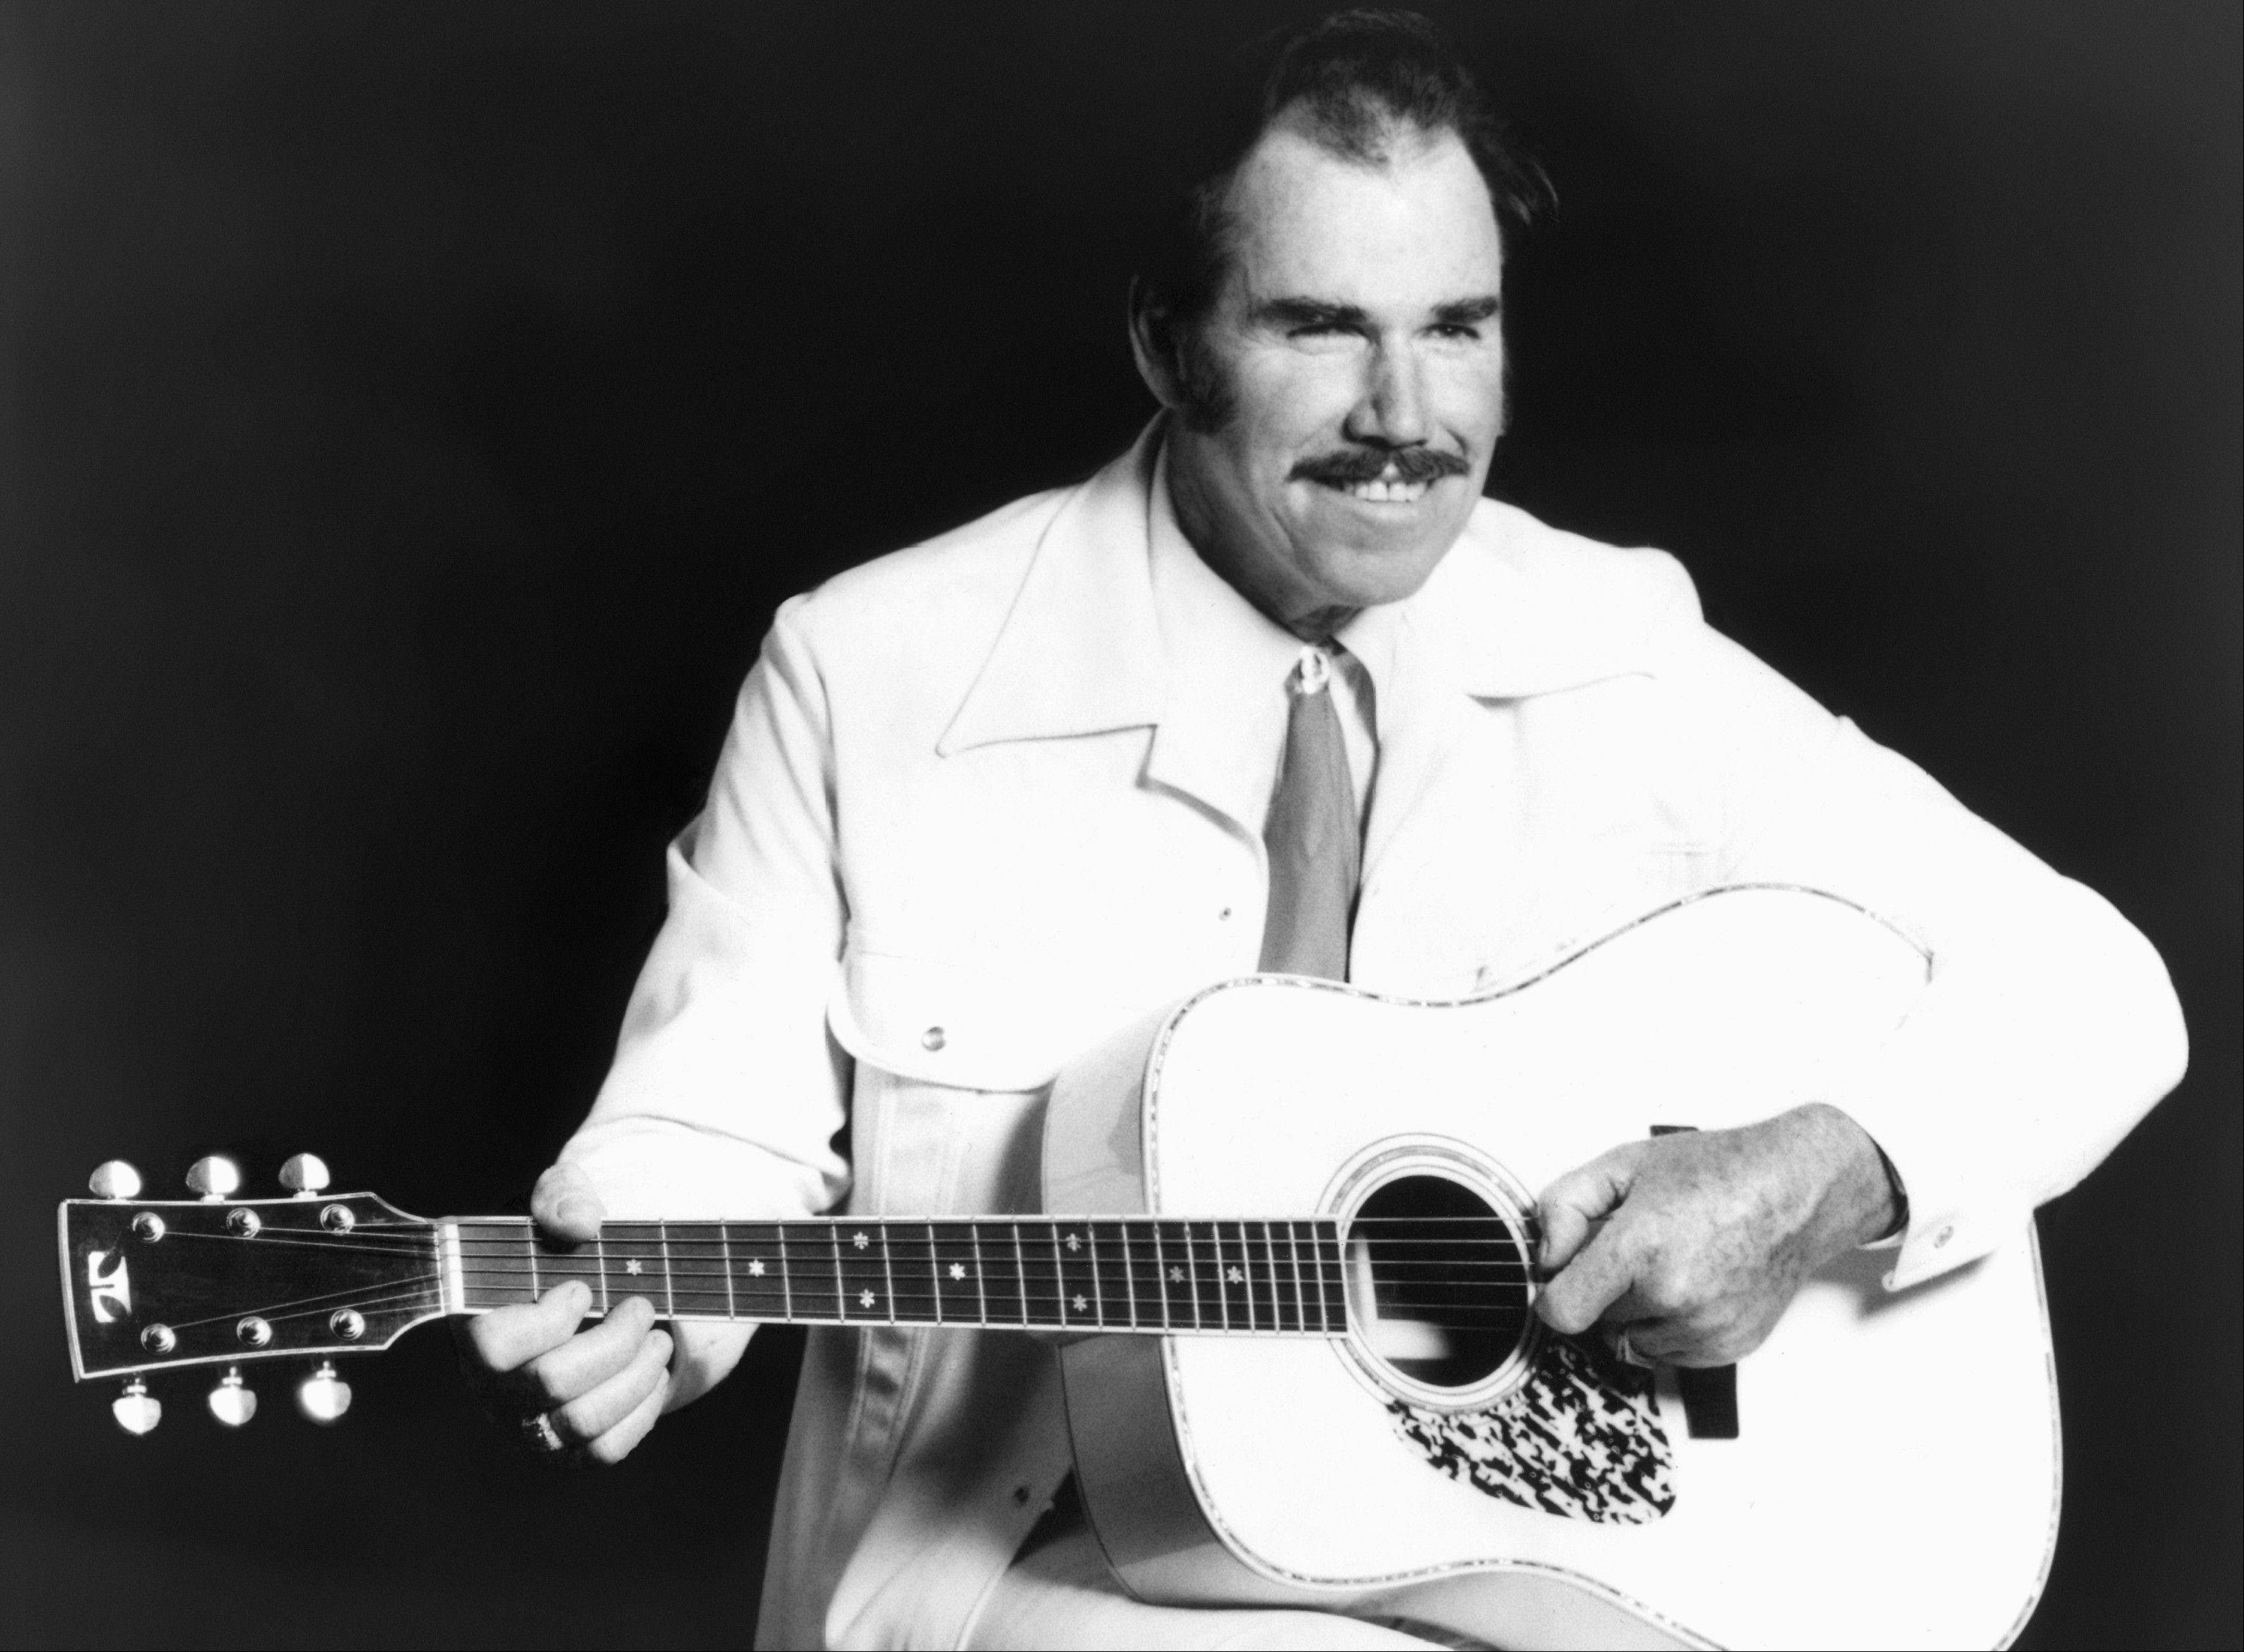 This undated file photo shows country singer Slim Whitman. Whitman died Wednesday, June 19, 2013 of heart failure in Florida. He was 90.